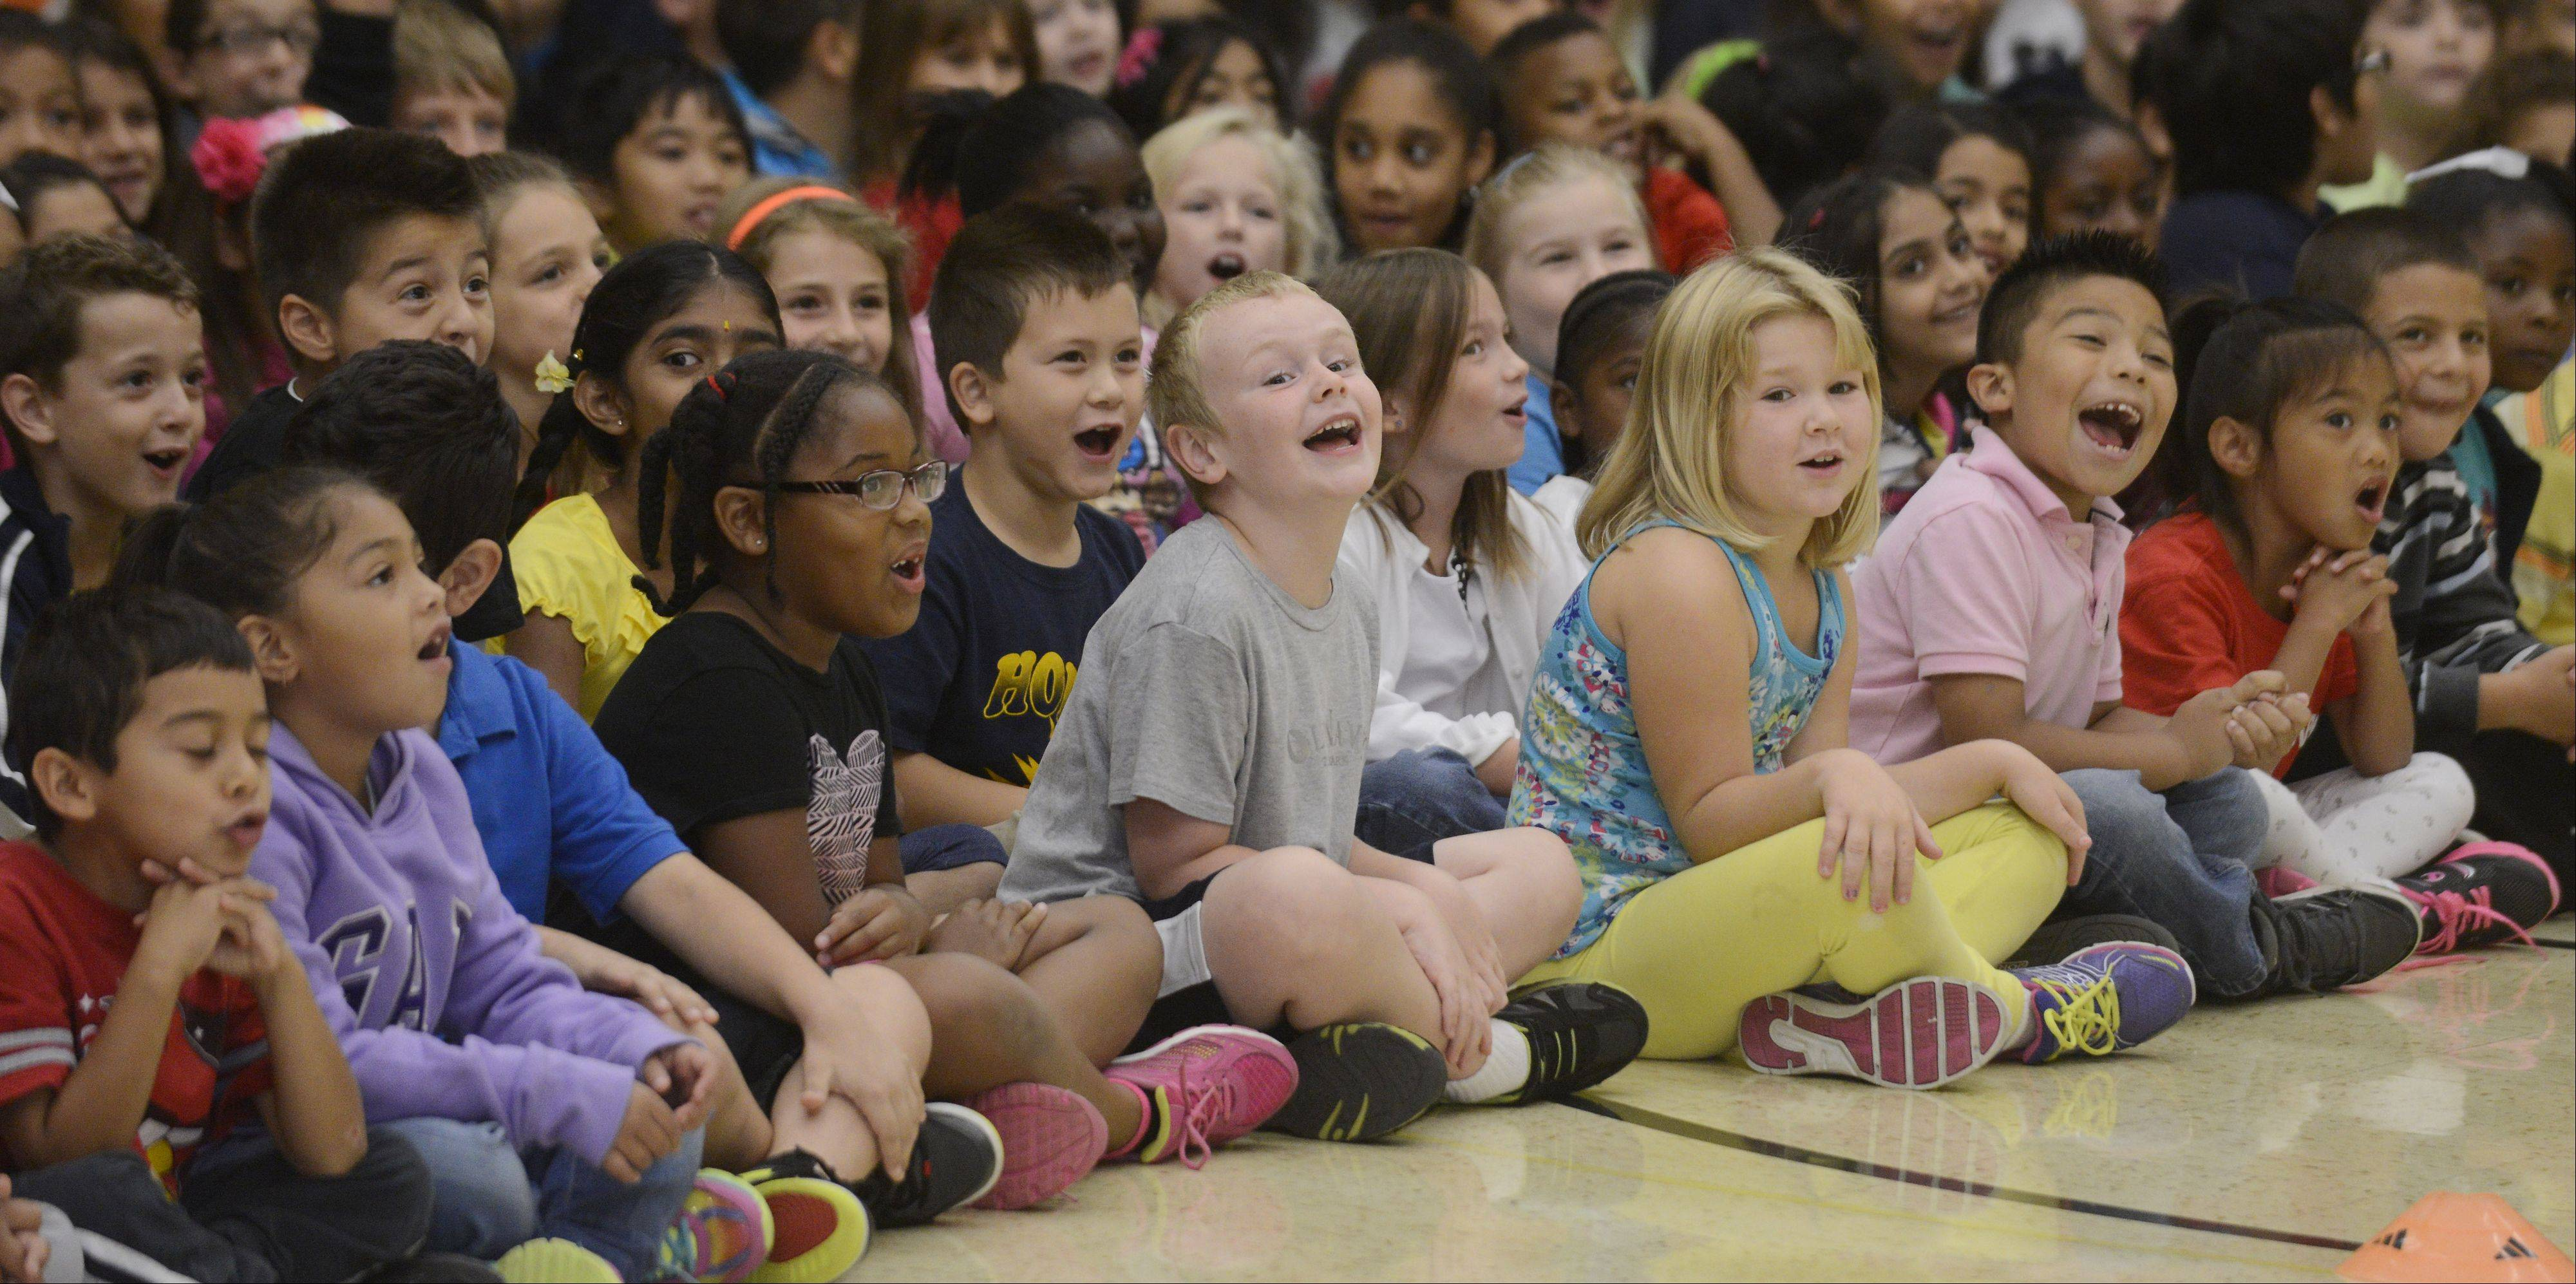 Students watch as America's Got Talent semifinalist Matt Wilhelm performs stunts on his BMX bike for an assembly at Horizon Elementary school in Hanover Park. In addition to performing the stunts, Wilhelm talked to the students about bullying, perseverance, bike safety and character.